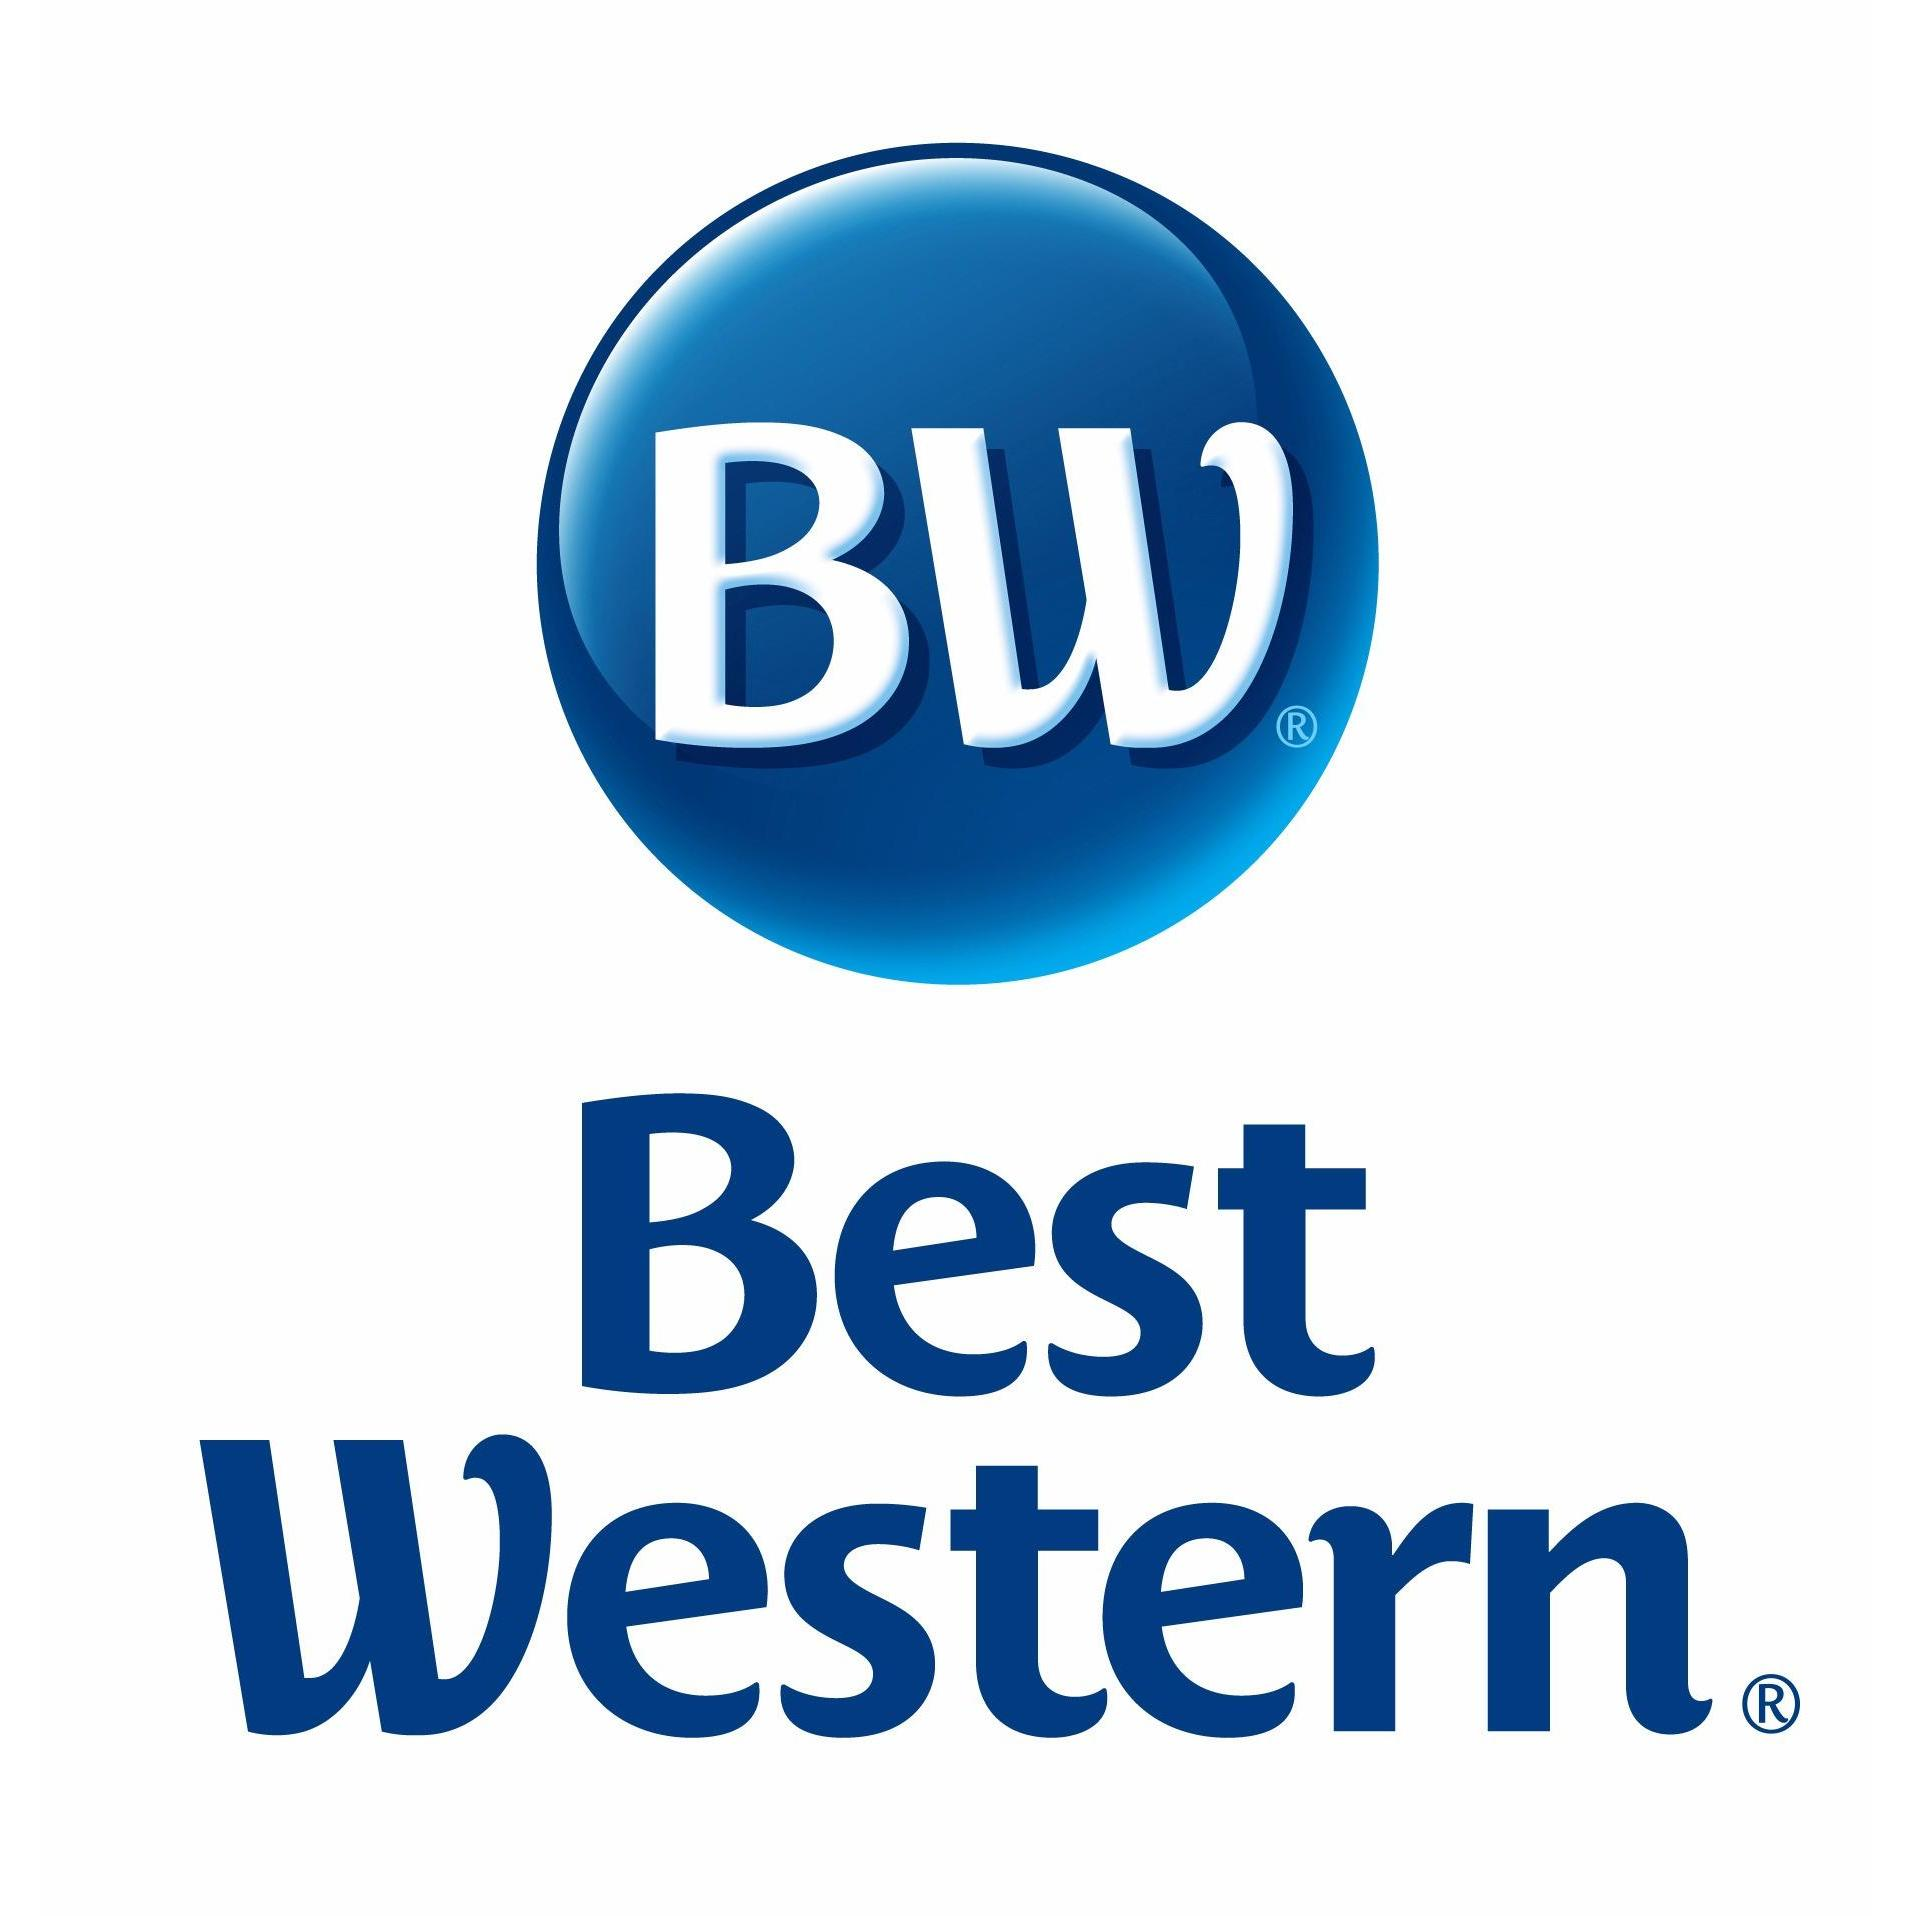 Best Western Alderwood - Lynnwood, WA - Hotels & Motels